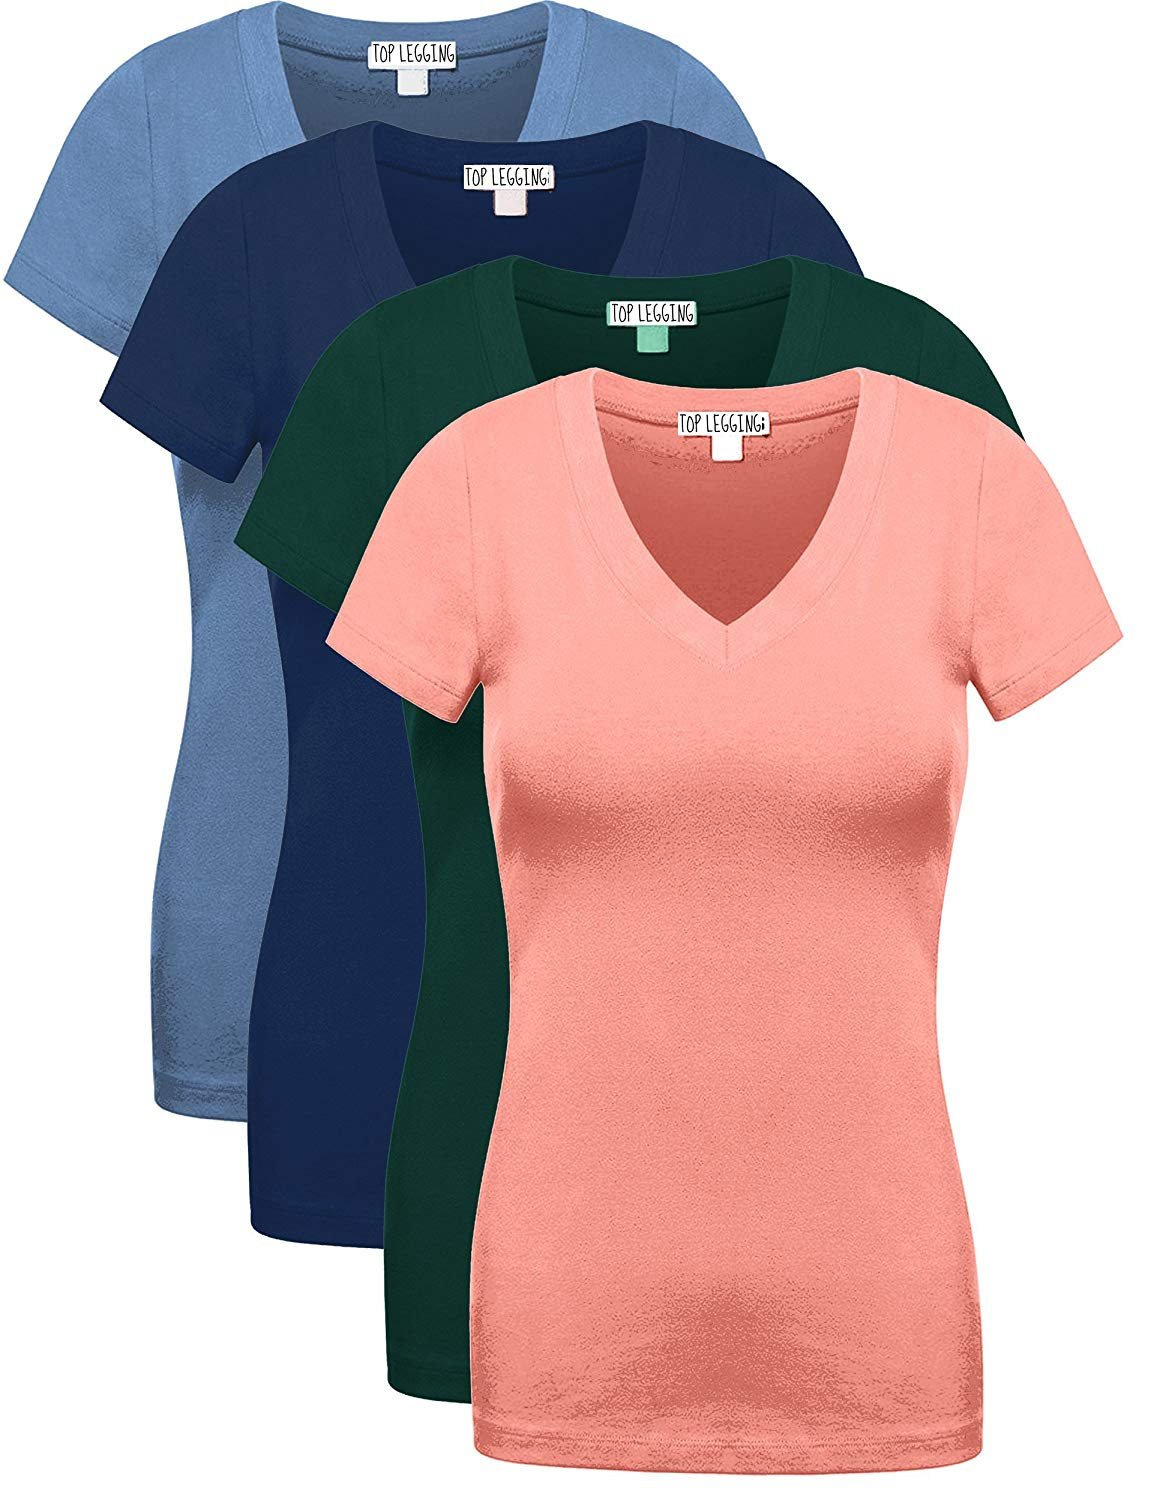 Comfy Basic Cotton Short Sleeves Solid V Neck Plain T Shirts for Women